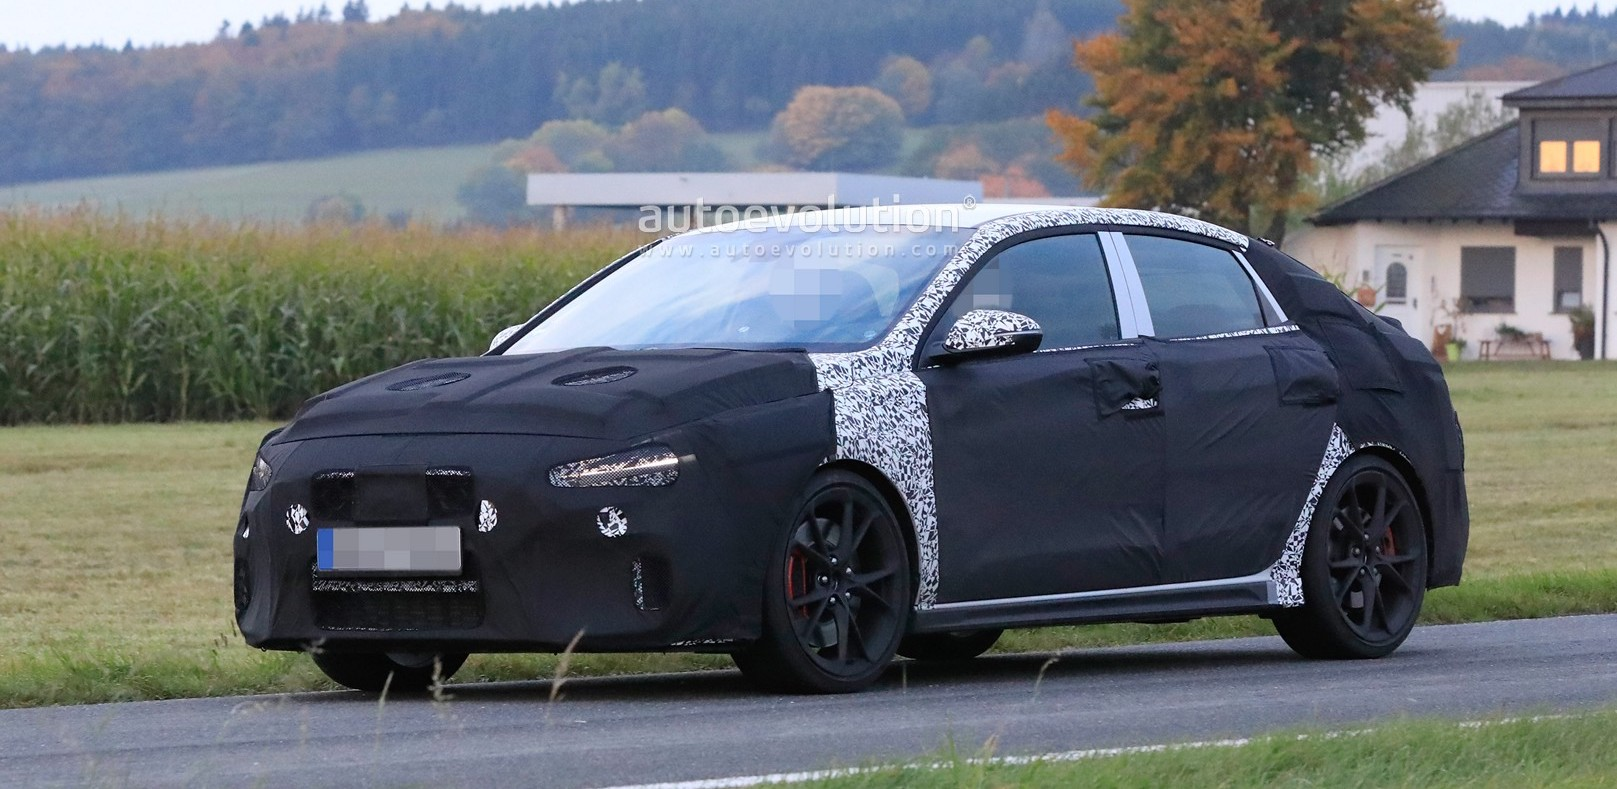 Hyundai i30 N Fastback Shows Epic Facelift Design